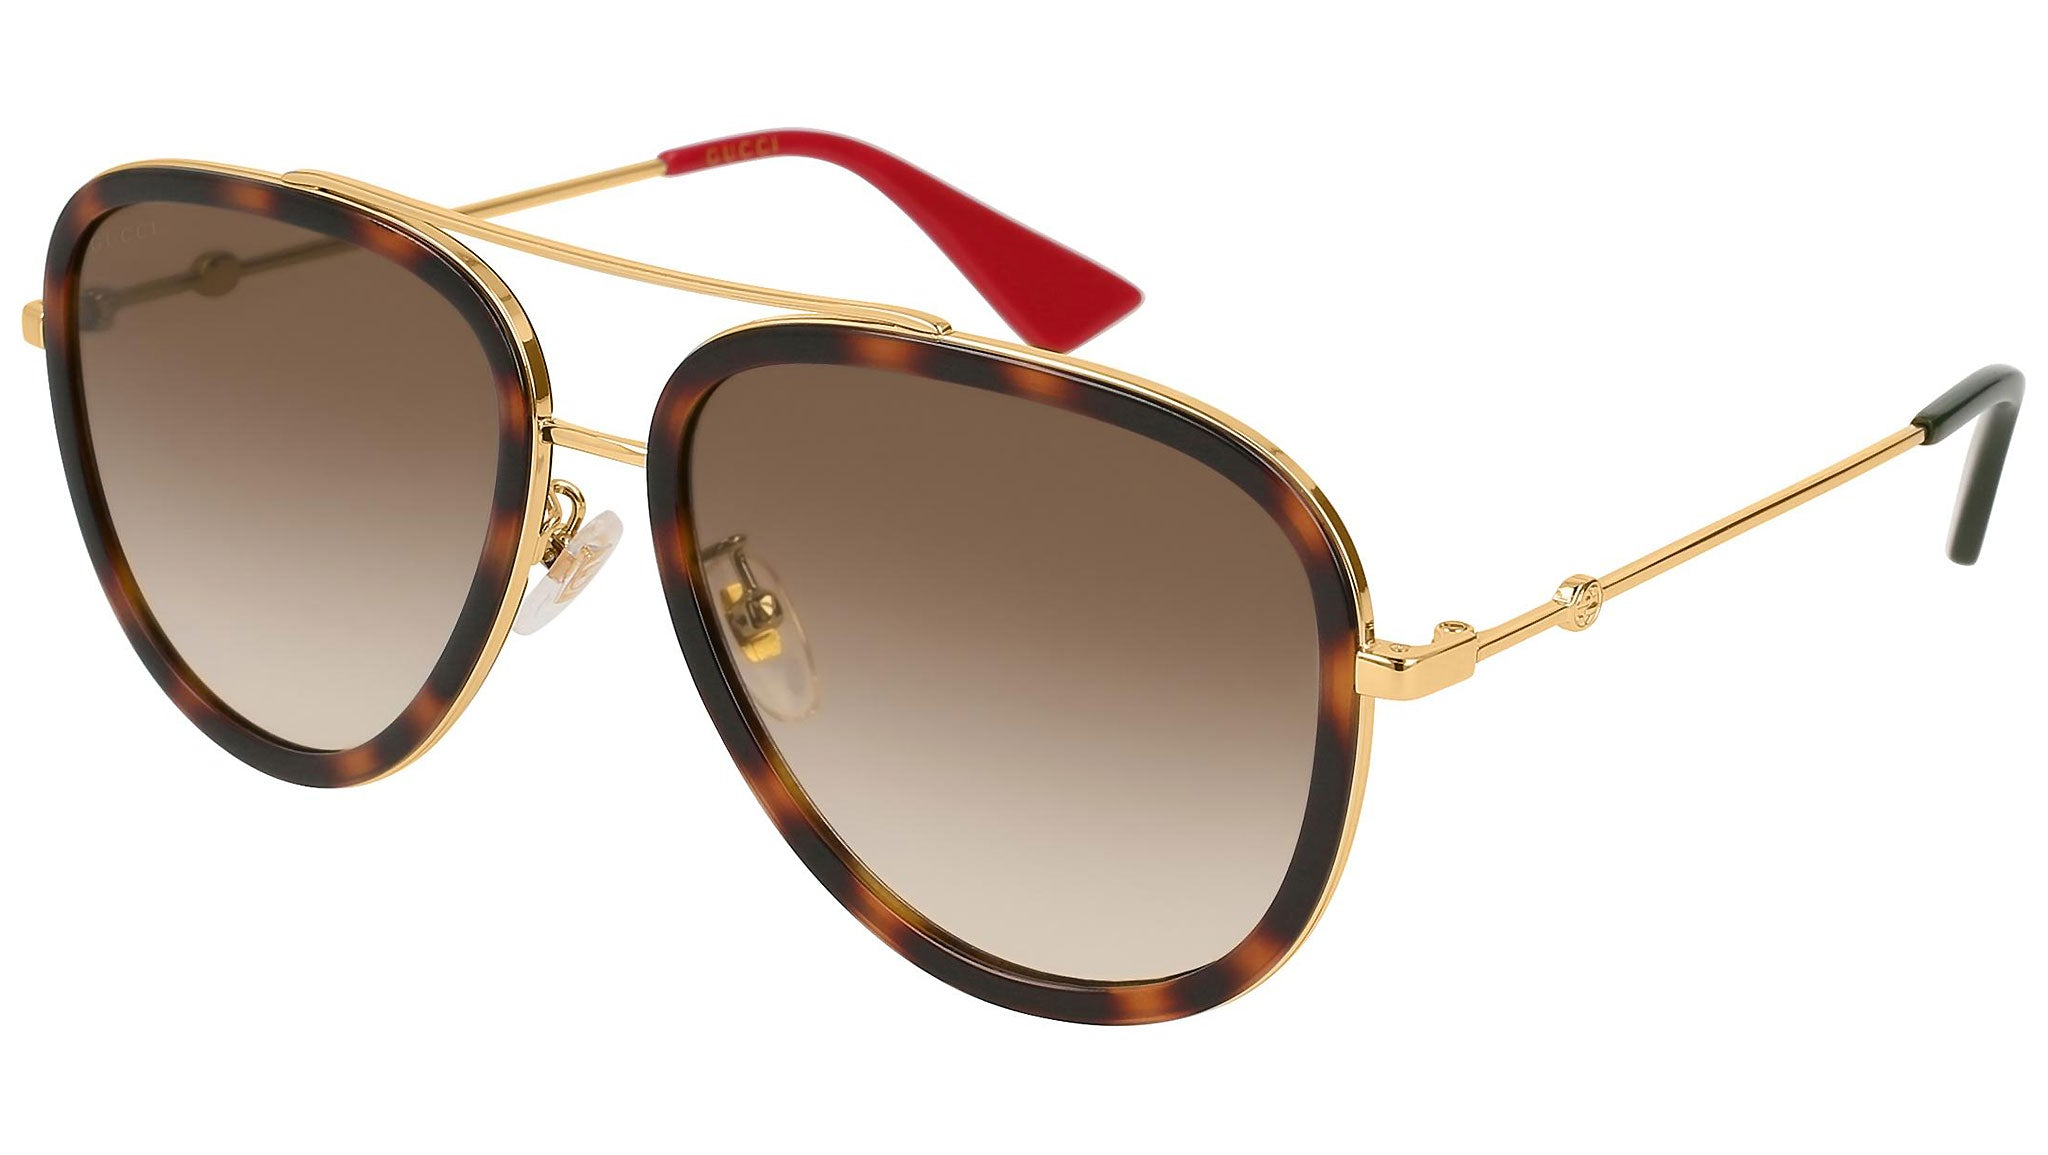 GG0062S havana gold and brown